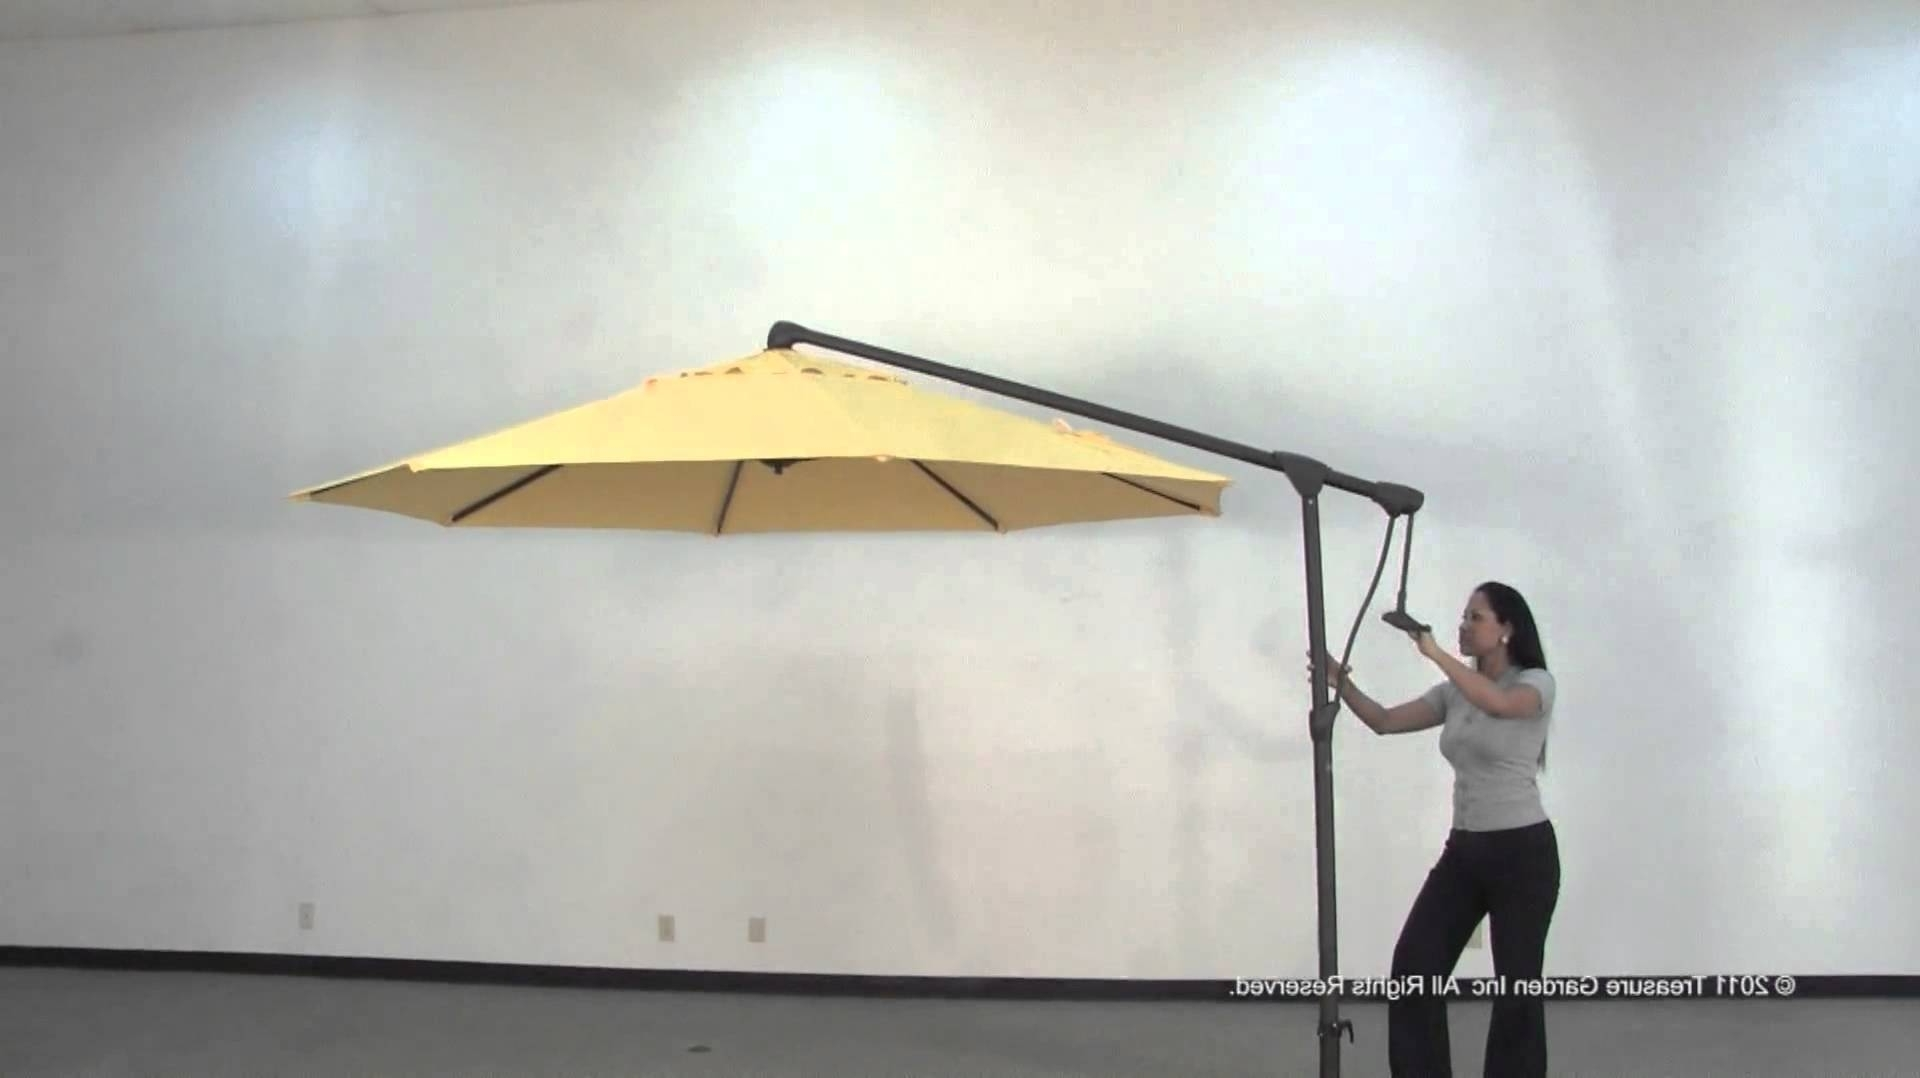 Side Mount Cantilever Outdoor Umbrella – Youtube For Most Current Ikea Patio Umbrellas (View 16 of 20)